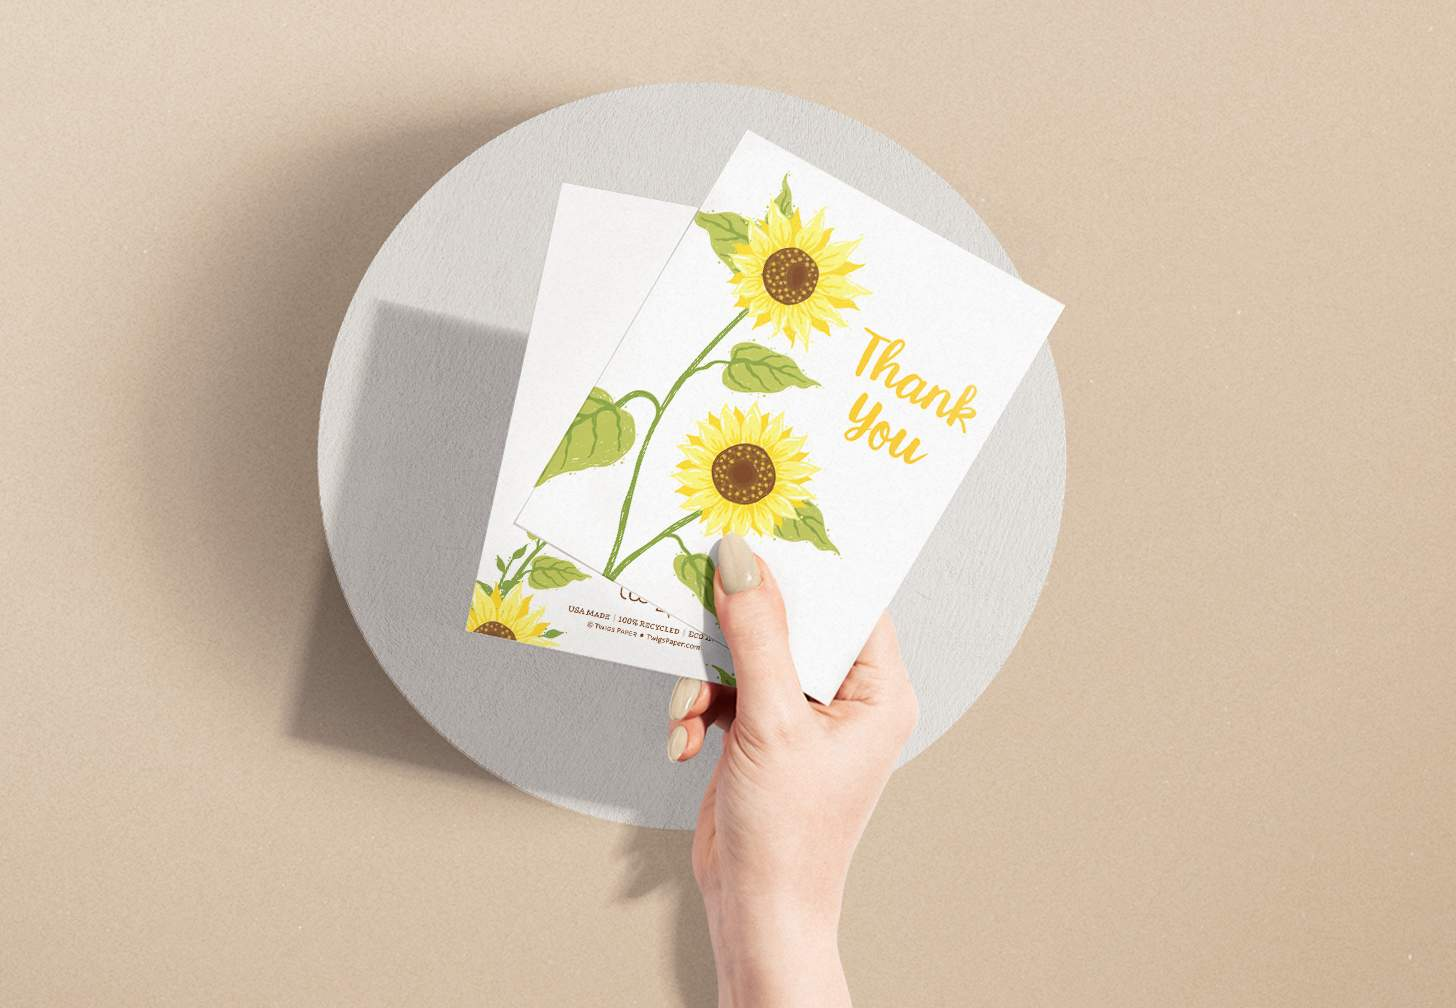 Hands holding Two yellow sunflower design with brown background